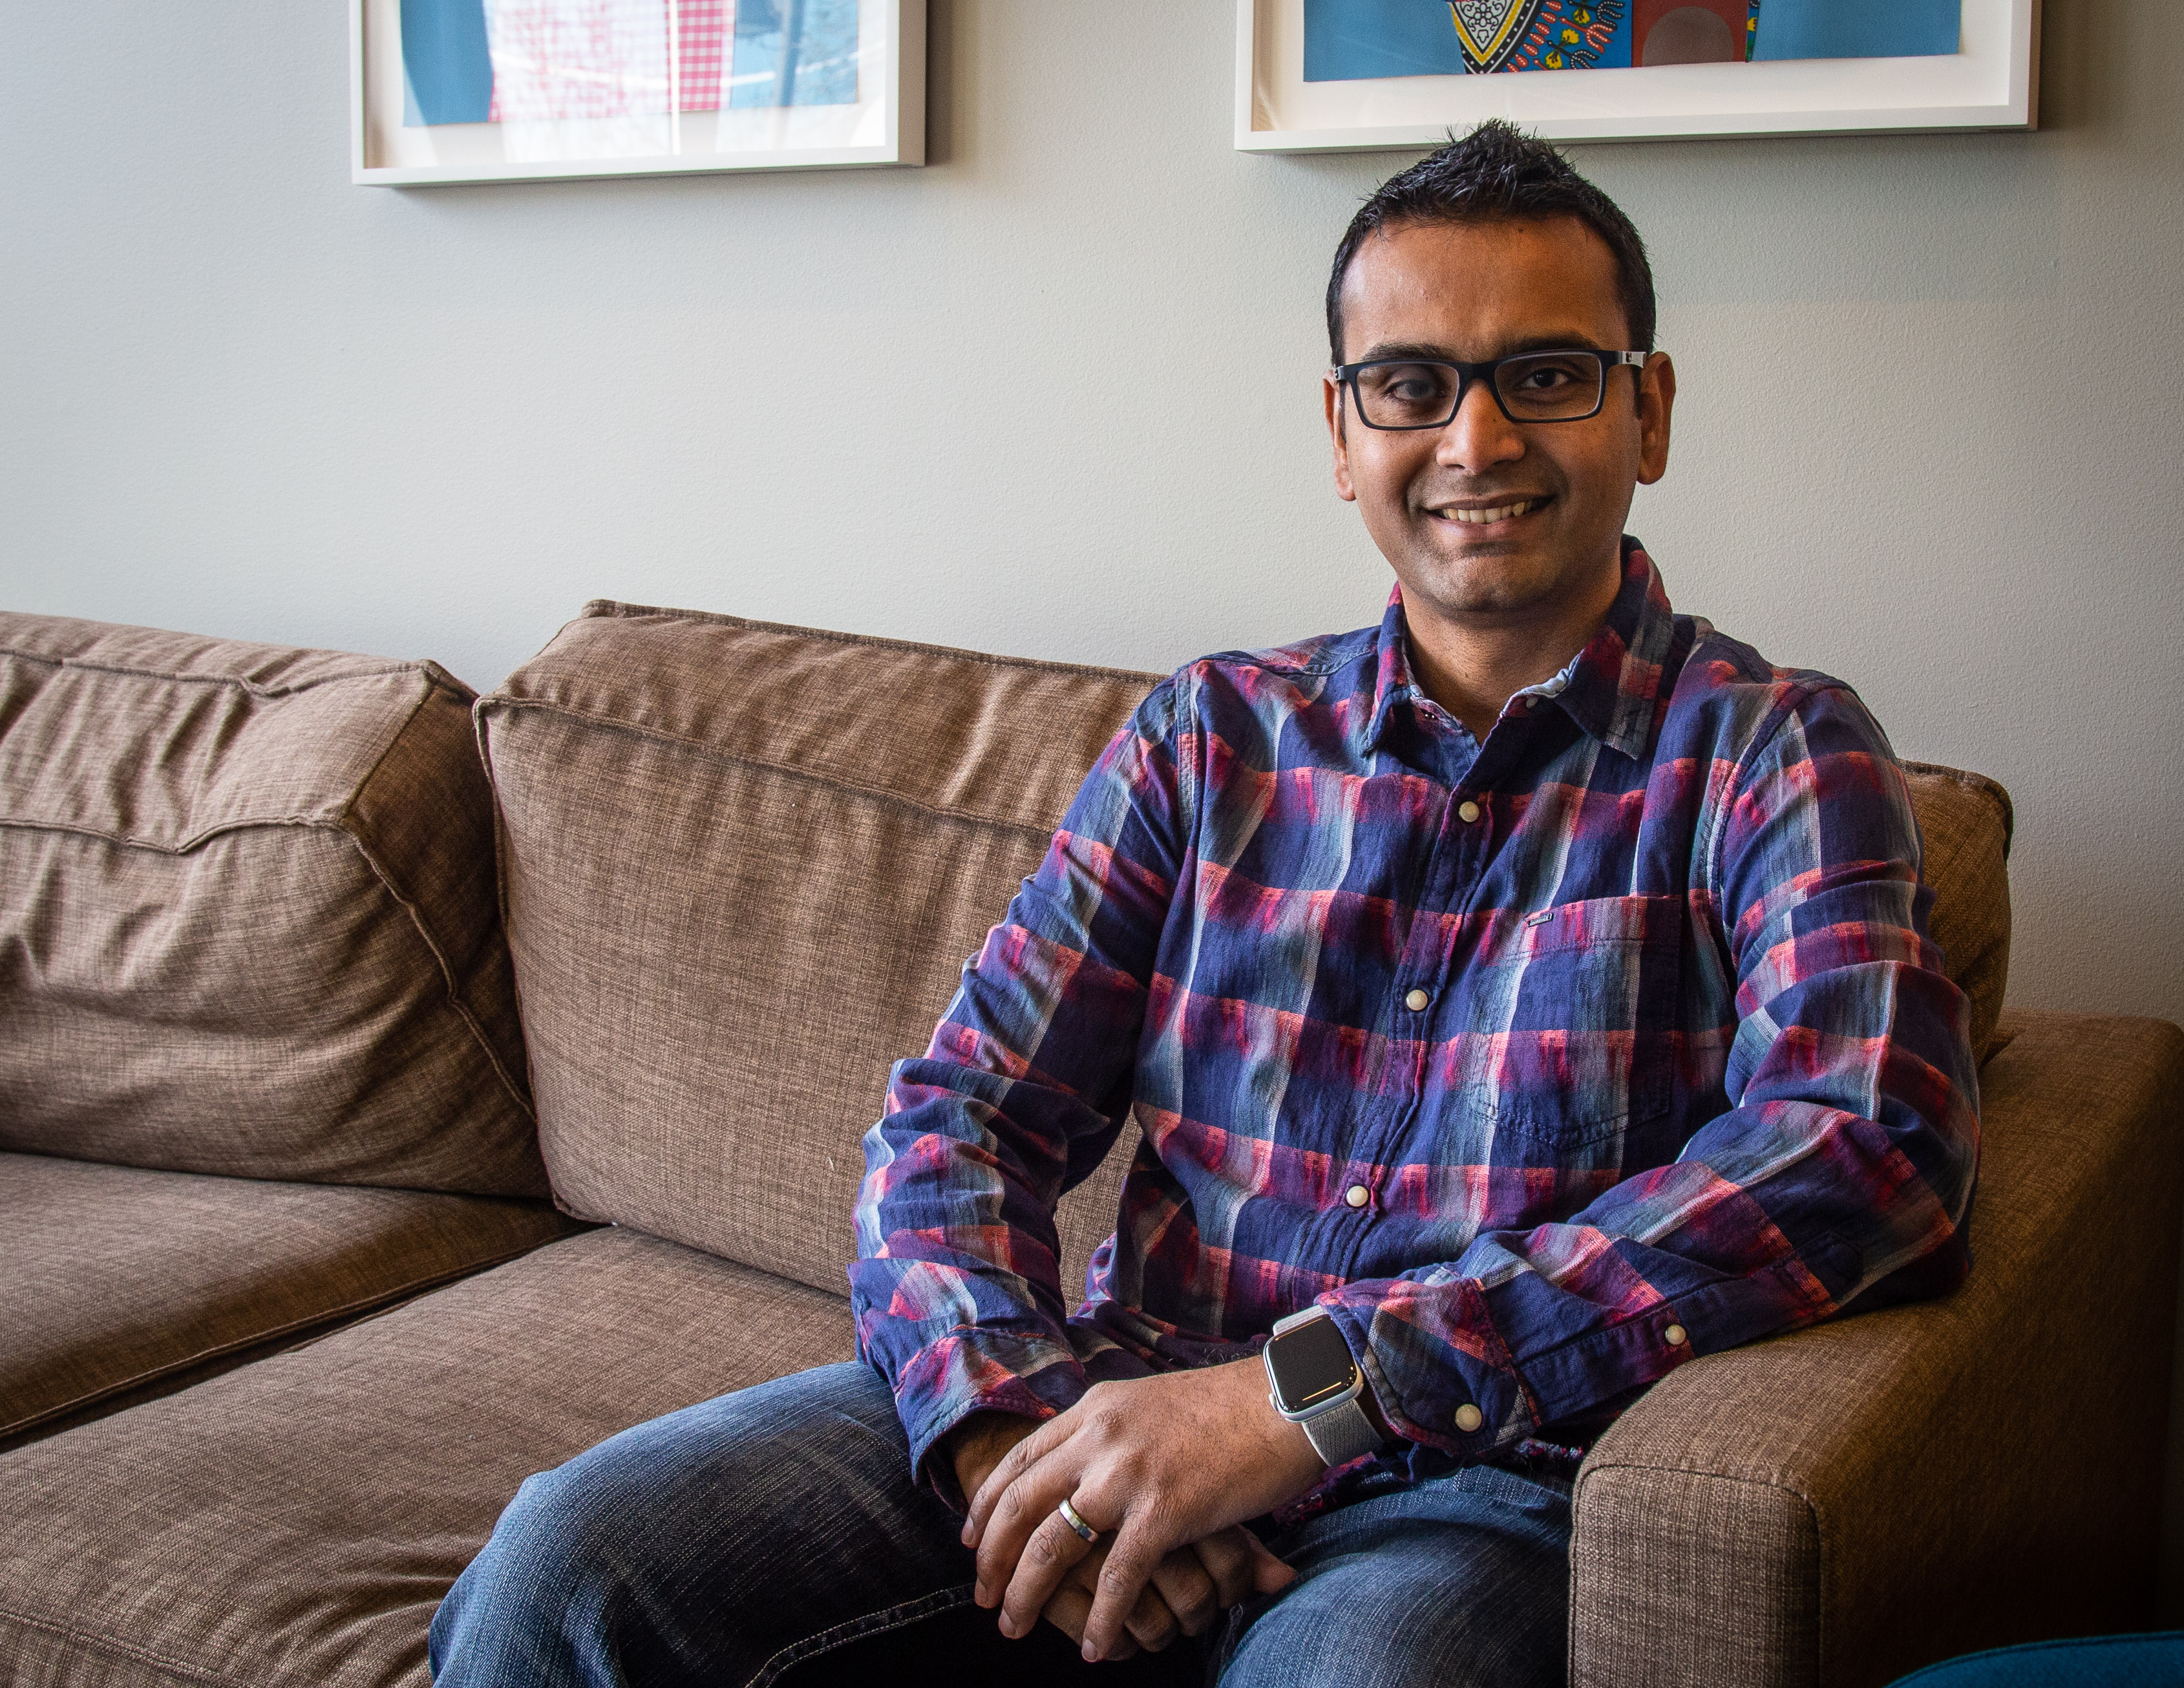 Abu Kabir sits on a couch in an open space near his office at Microsoft.